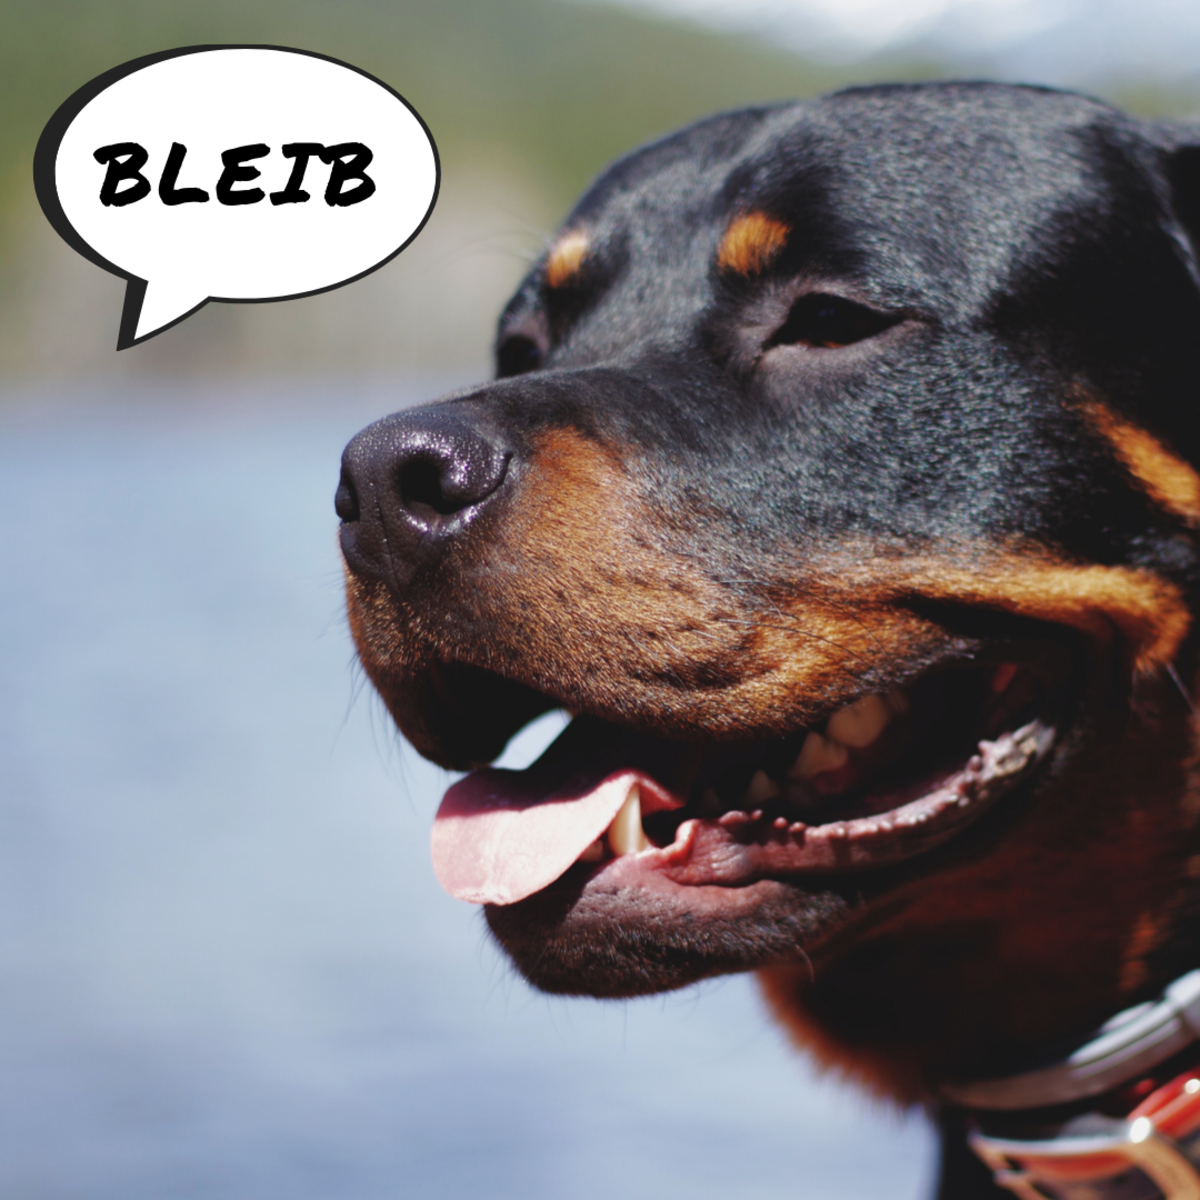 Your dog won't confuse commands for conversation in your primary language.